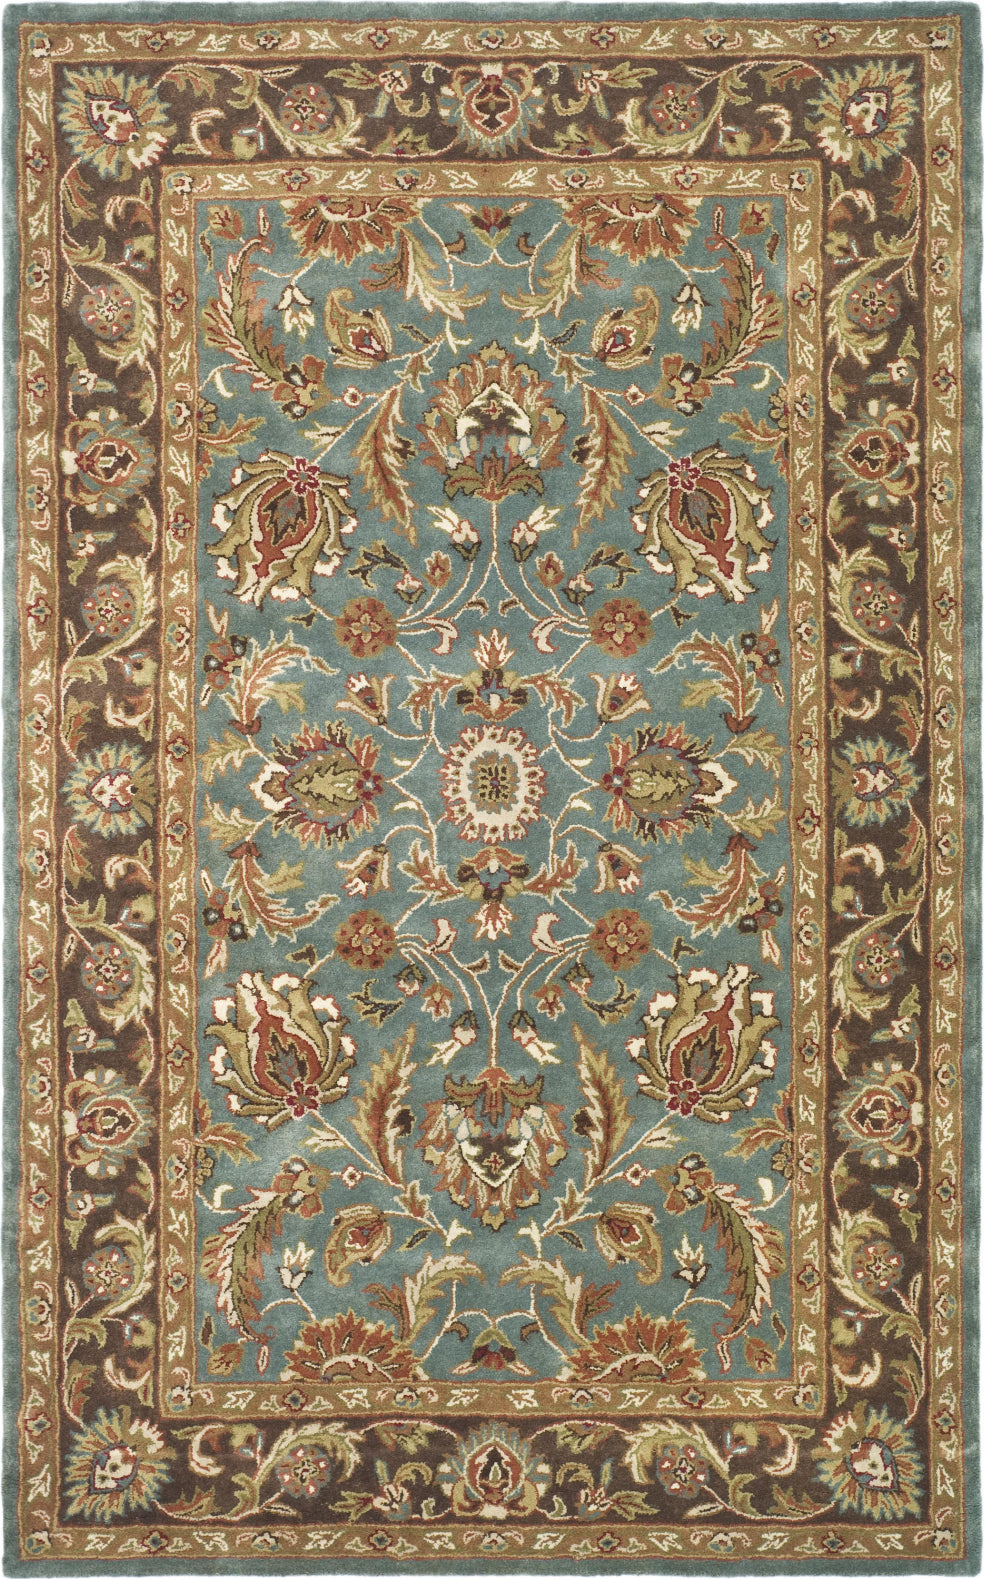 Safavieh Heritage 812 Blue/Brown Area Rug main image